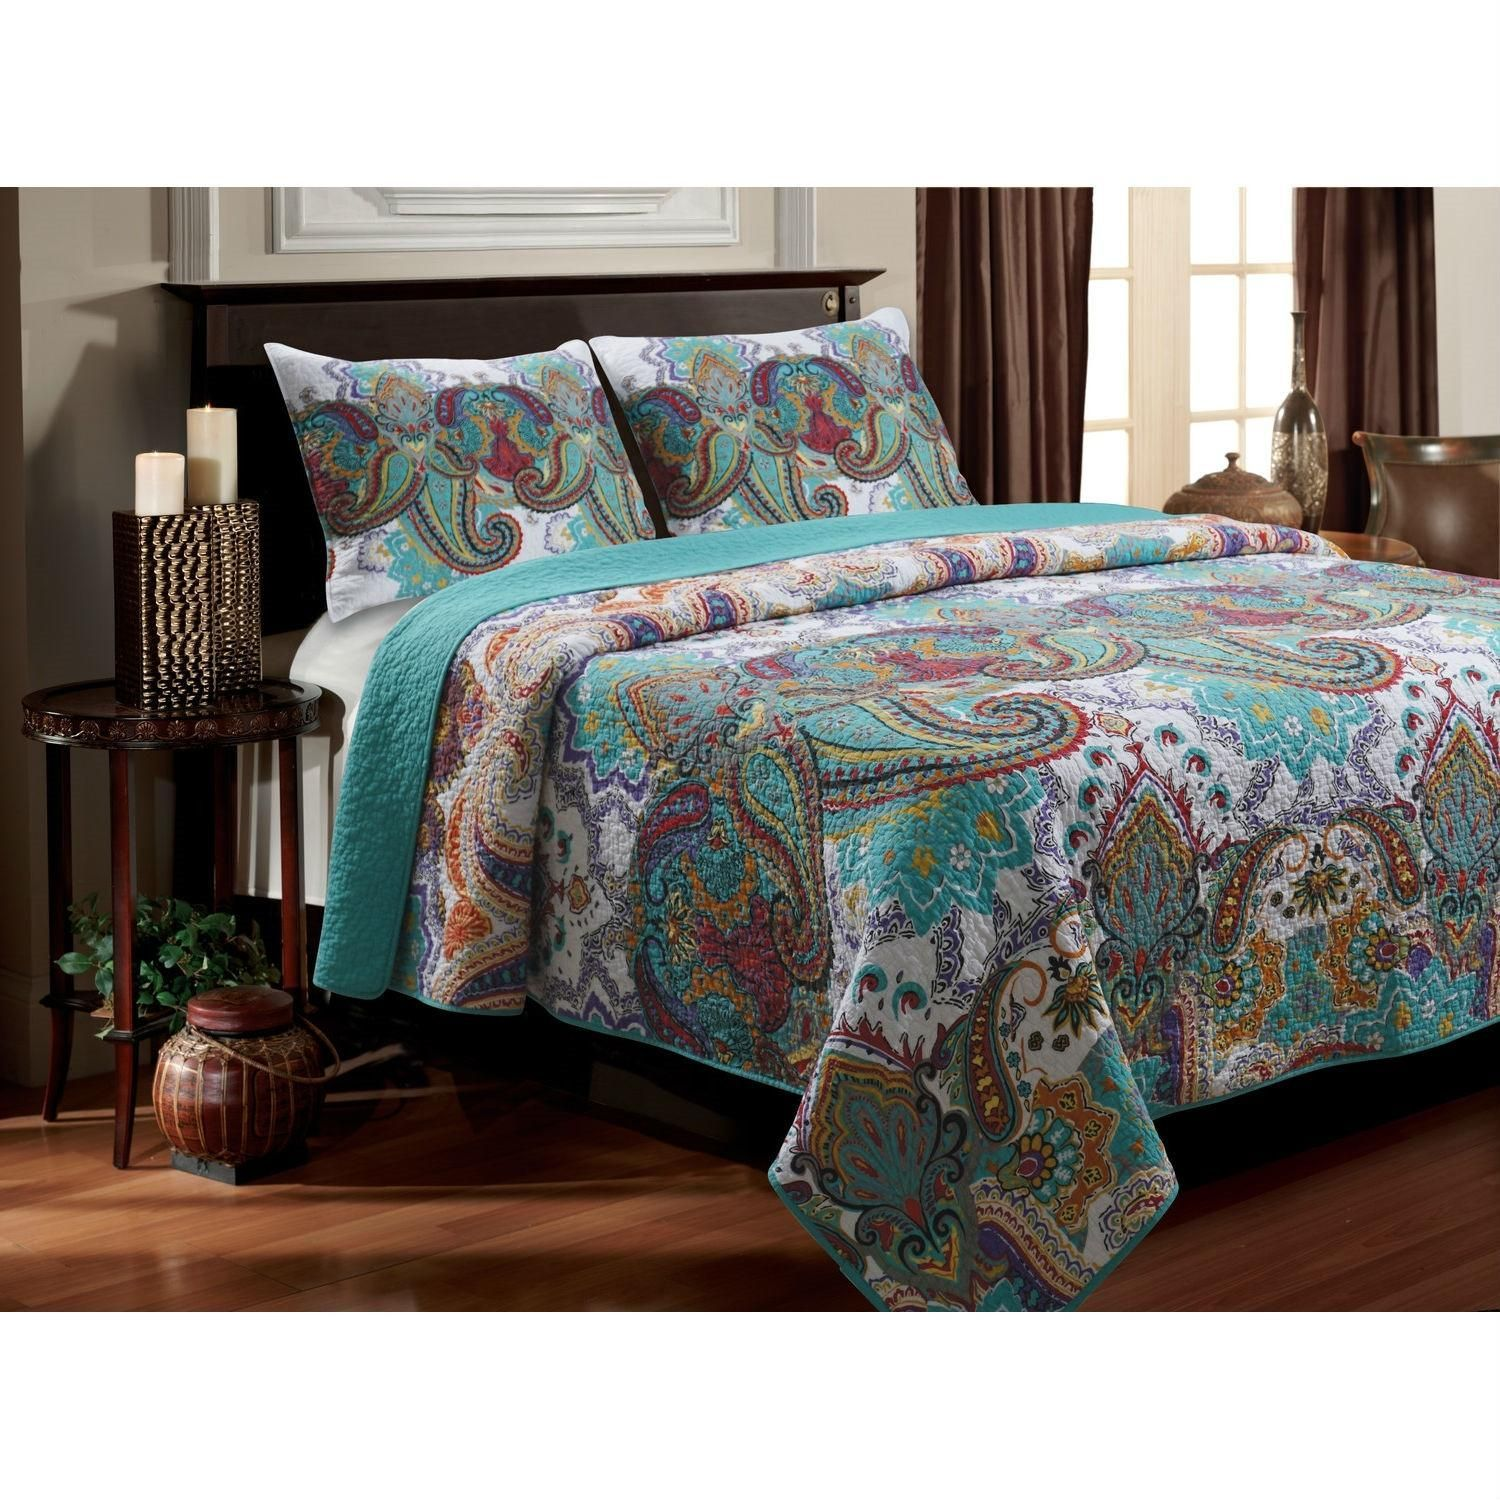 King Size 100 Percent Cotton Quilt Set In Teal Paisley Pattern